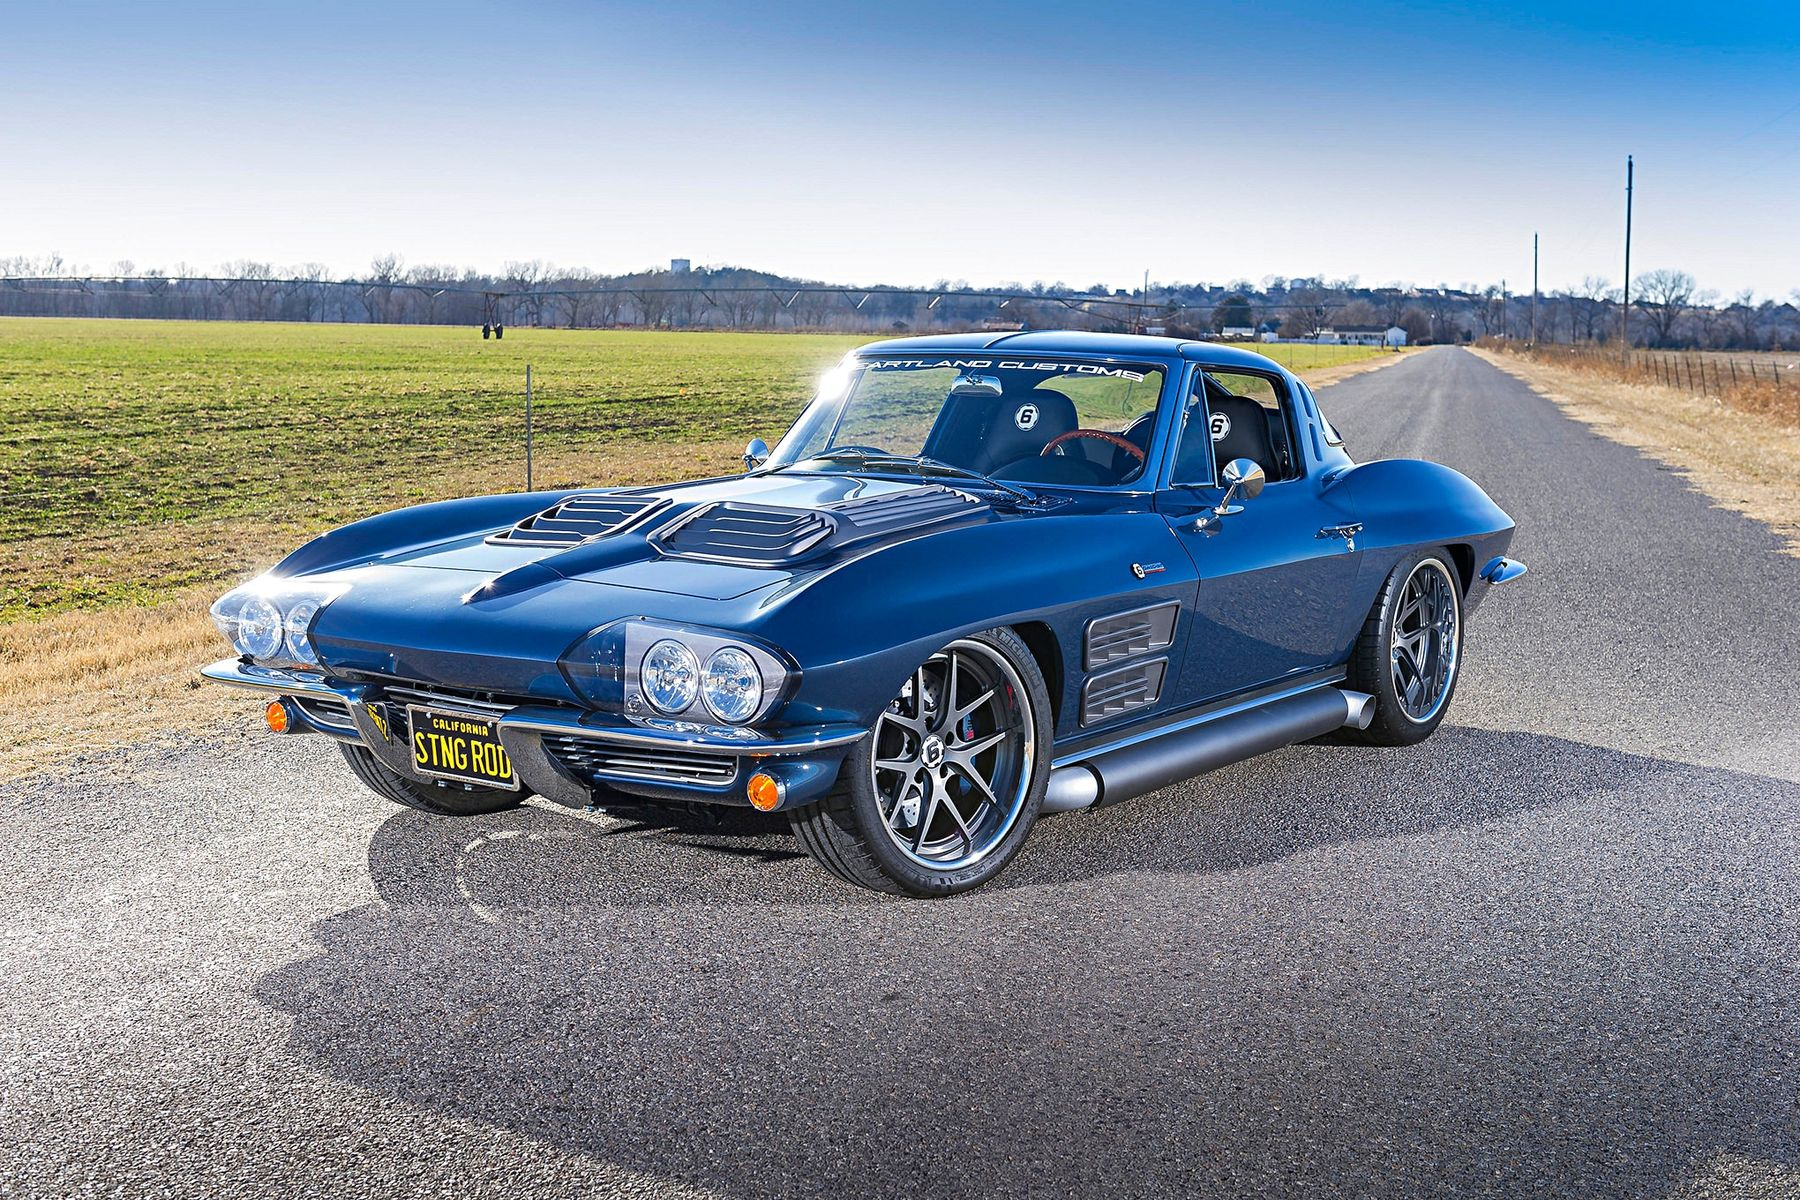 1963 Chevrolet Corvette Stingray | Heartland Customs' 1963 Corvette Stingray on Forgeline VX3C Wheels